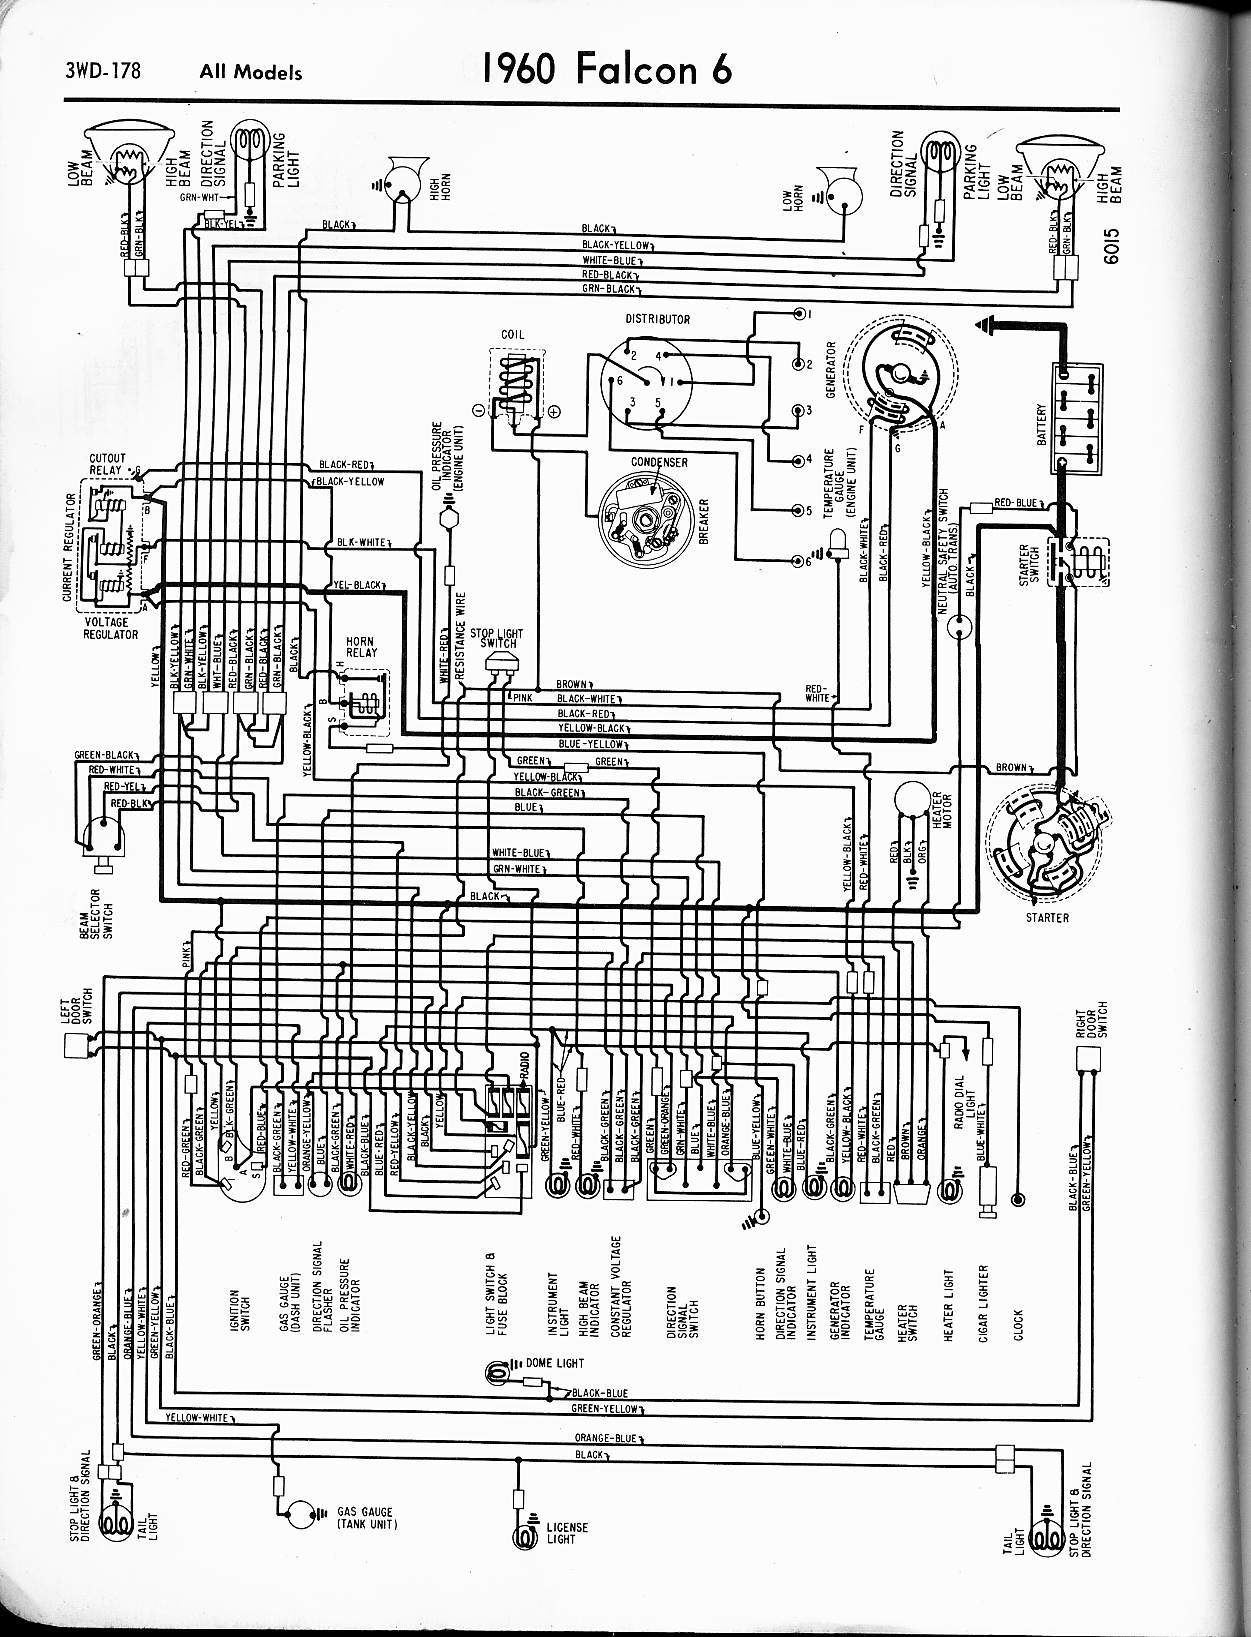 [WRG-7916] 1957 Ford Fairlane Wiring Diagram